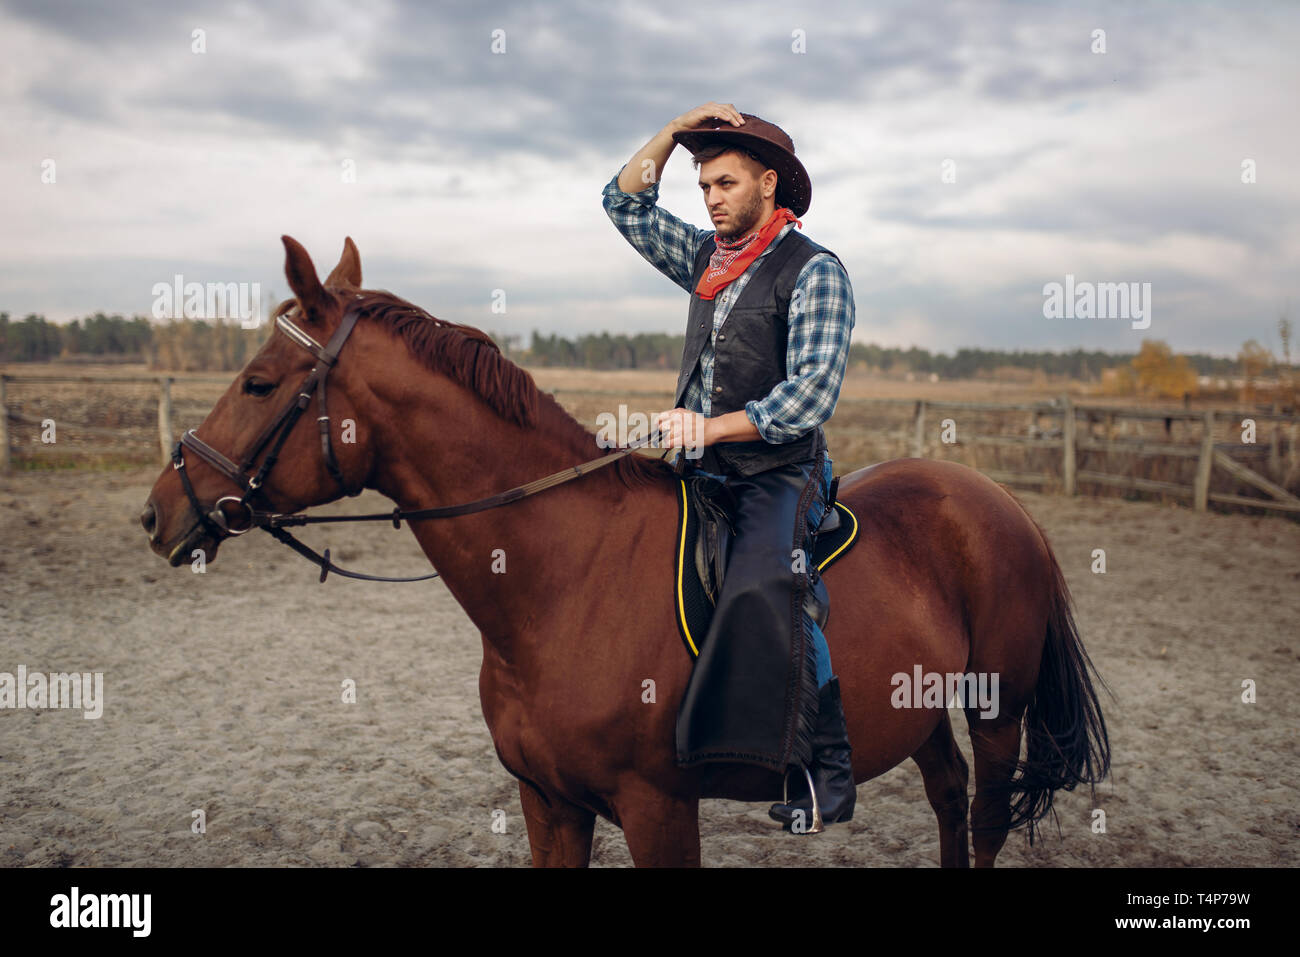 Cowboy Riding A Horse In Desert Valley Western Vintage Male Person On Horseback Wild West Adventure Stock Photo Alamy